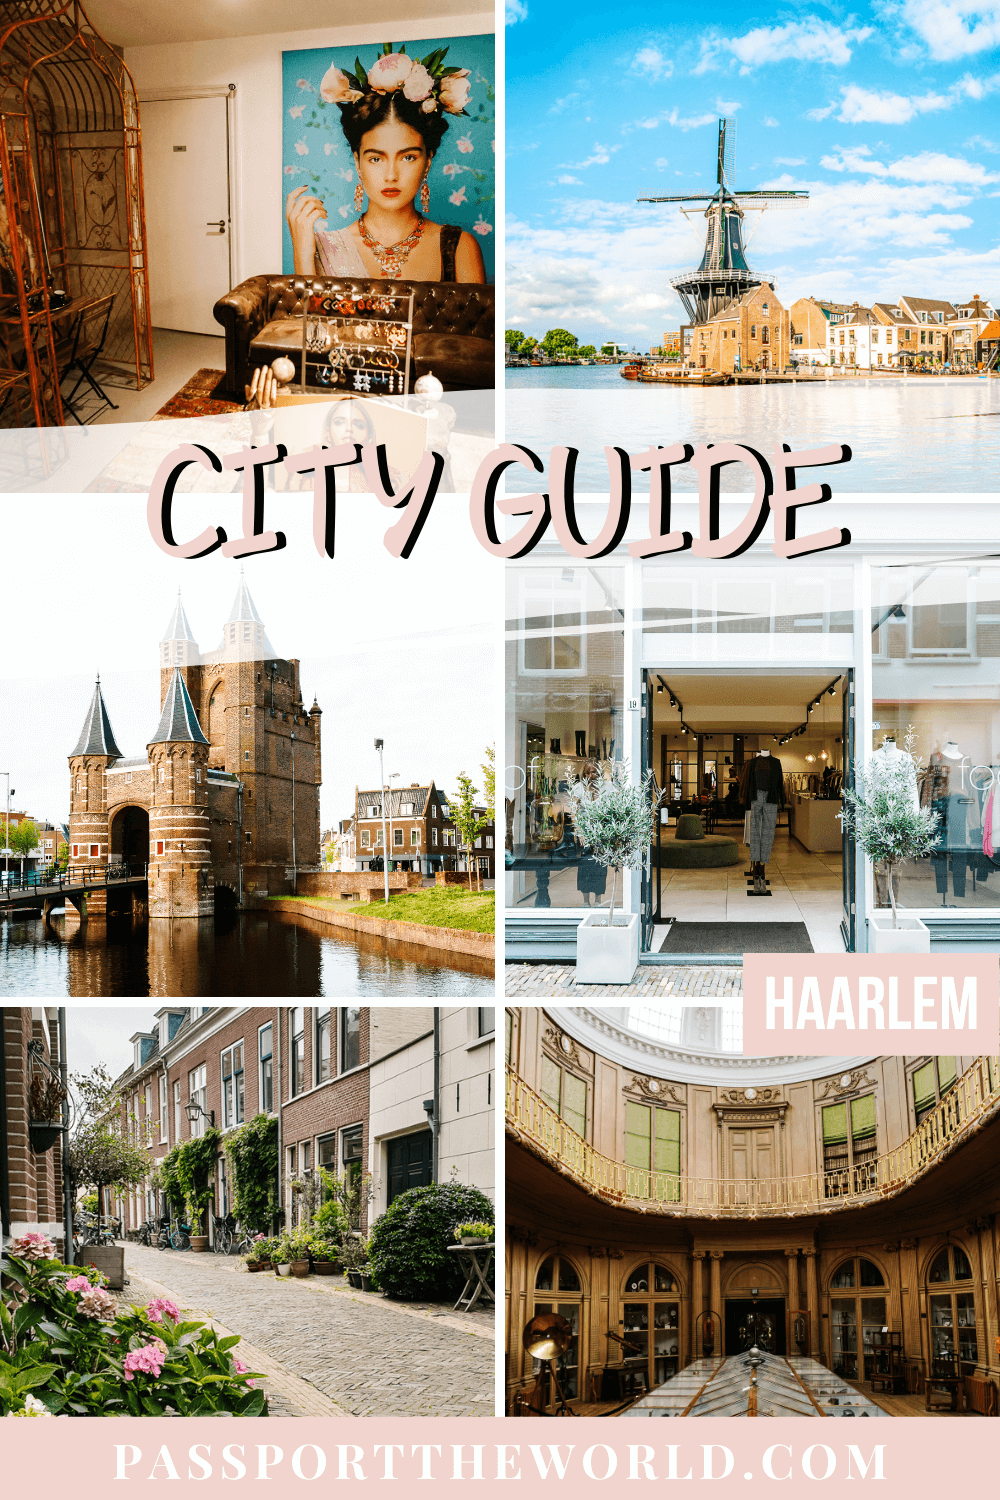 Discover the best things to do in Haarlem!